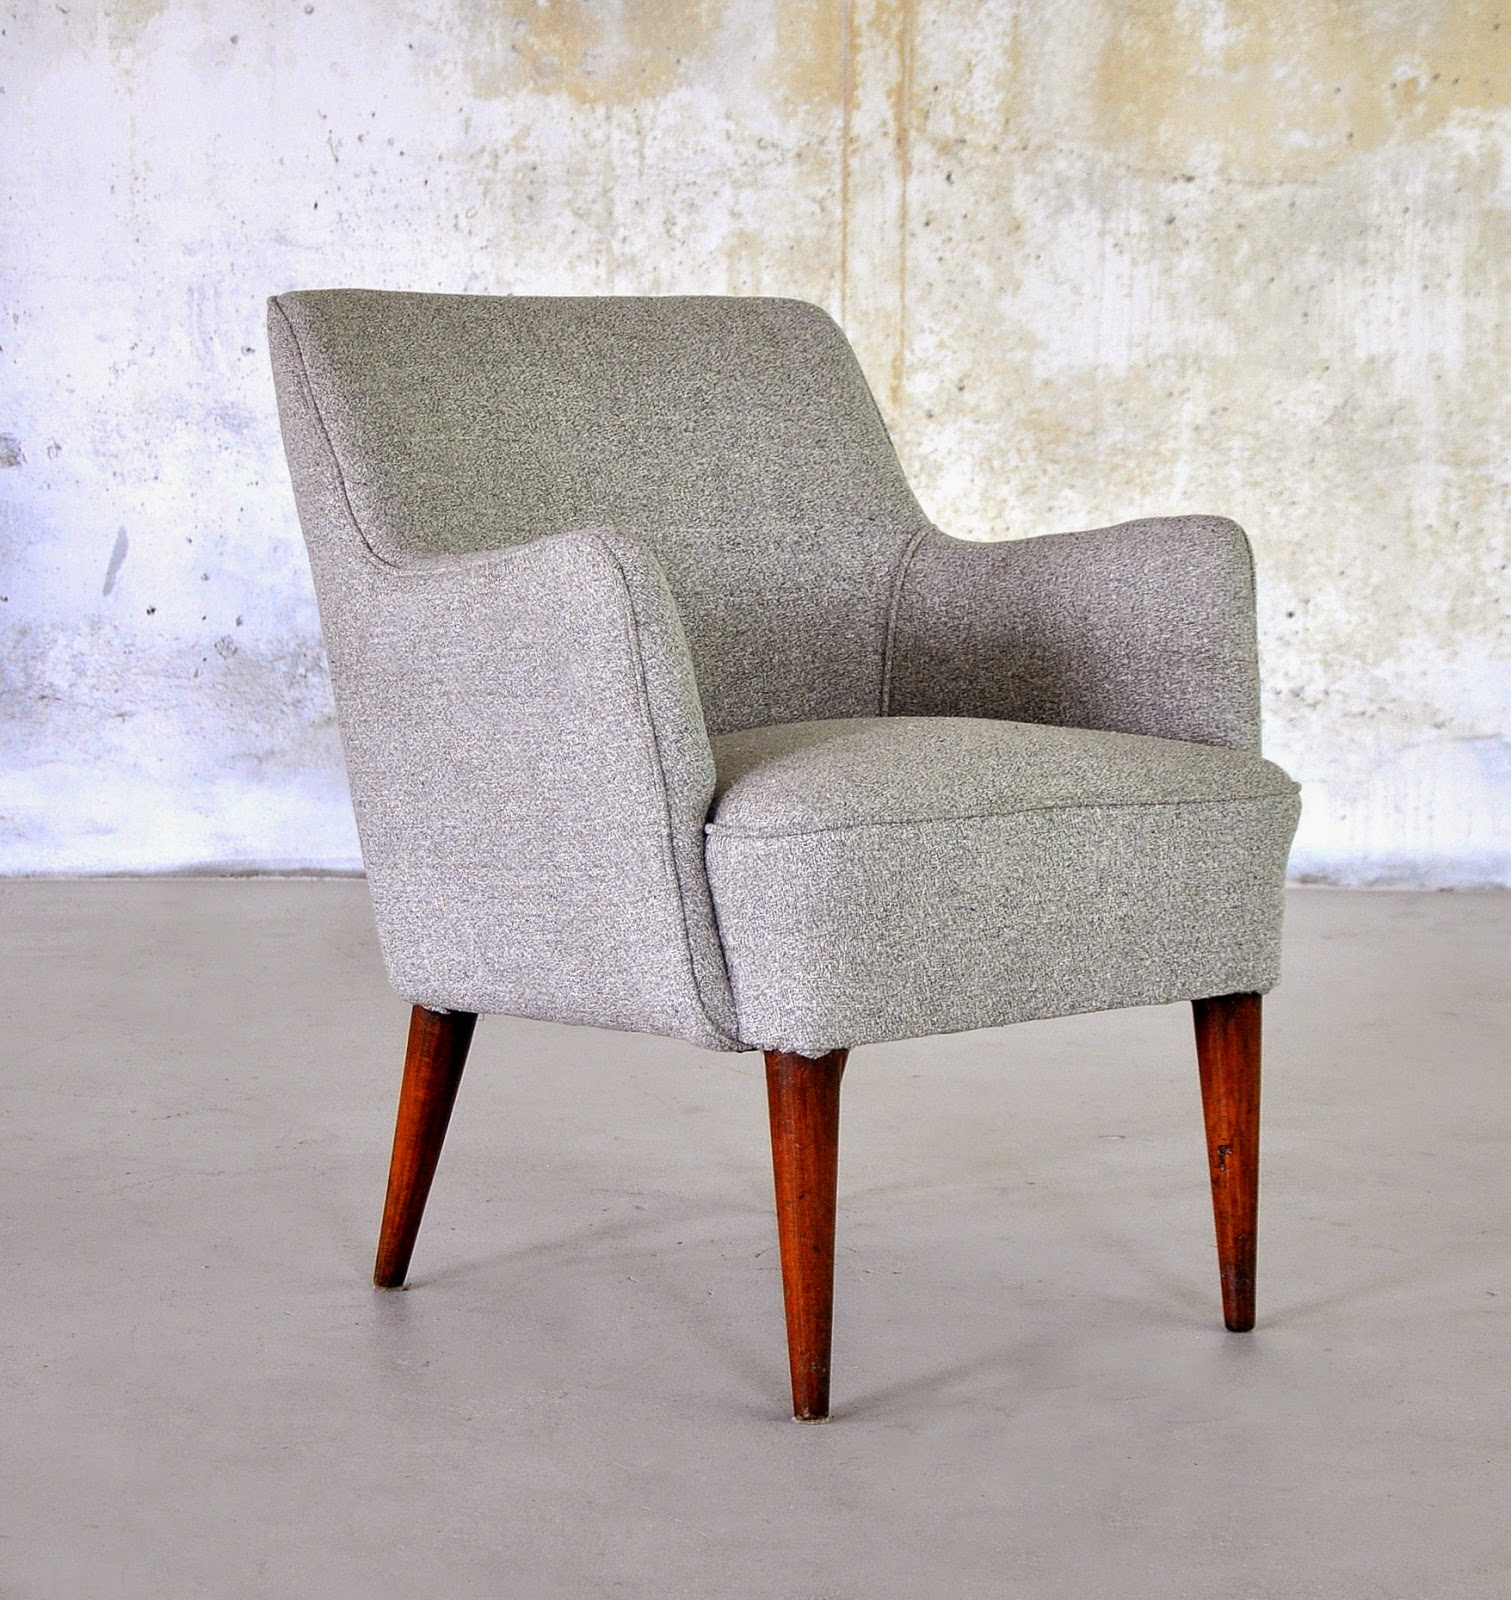 Cool Select Modern Danish Modern Lounge Club Or Accent Chair Pabps2019 Chair Design Images Pabps2019Com